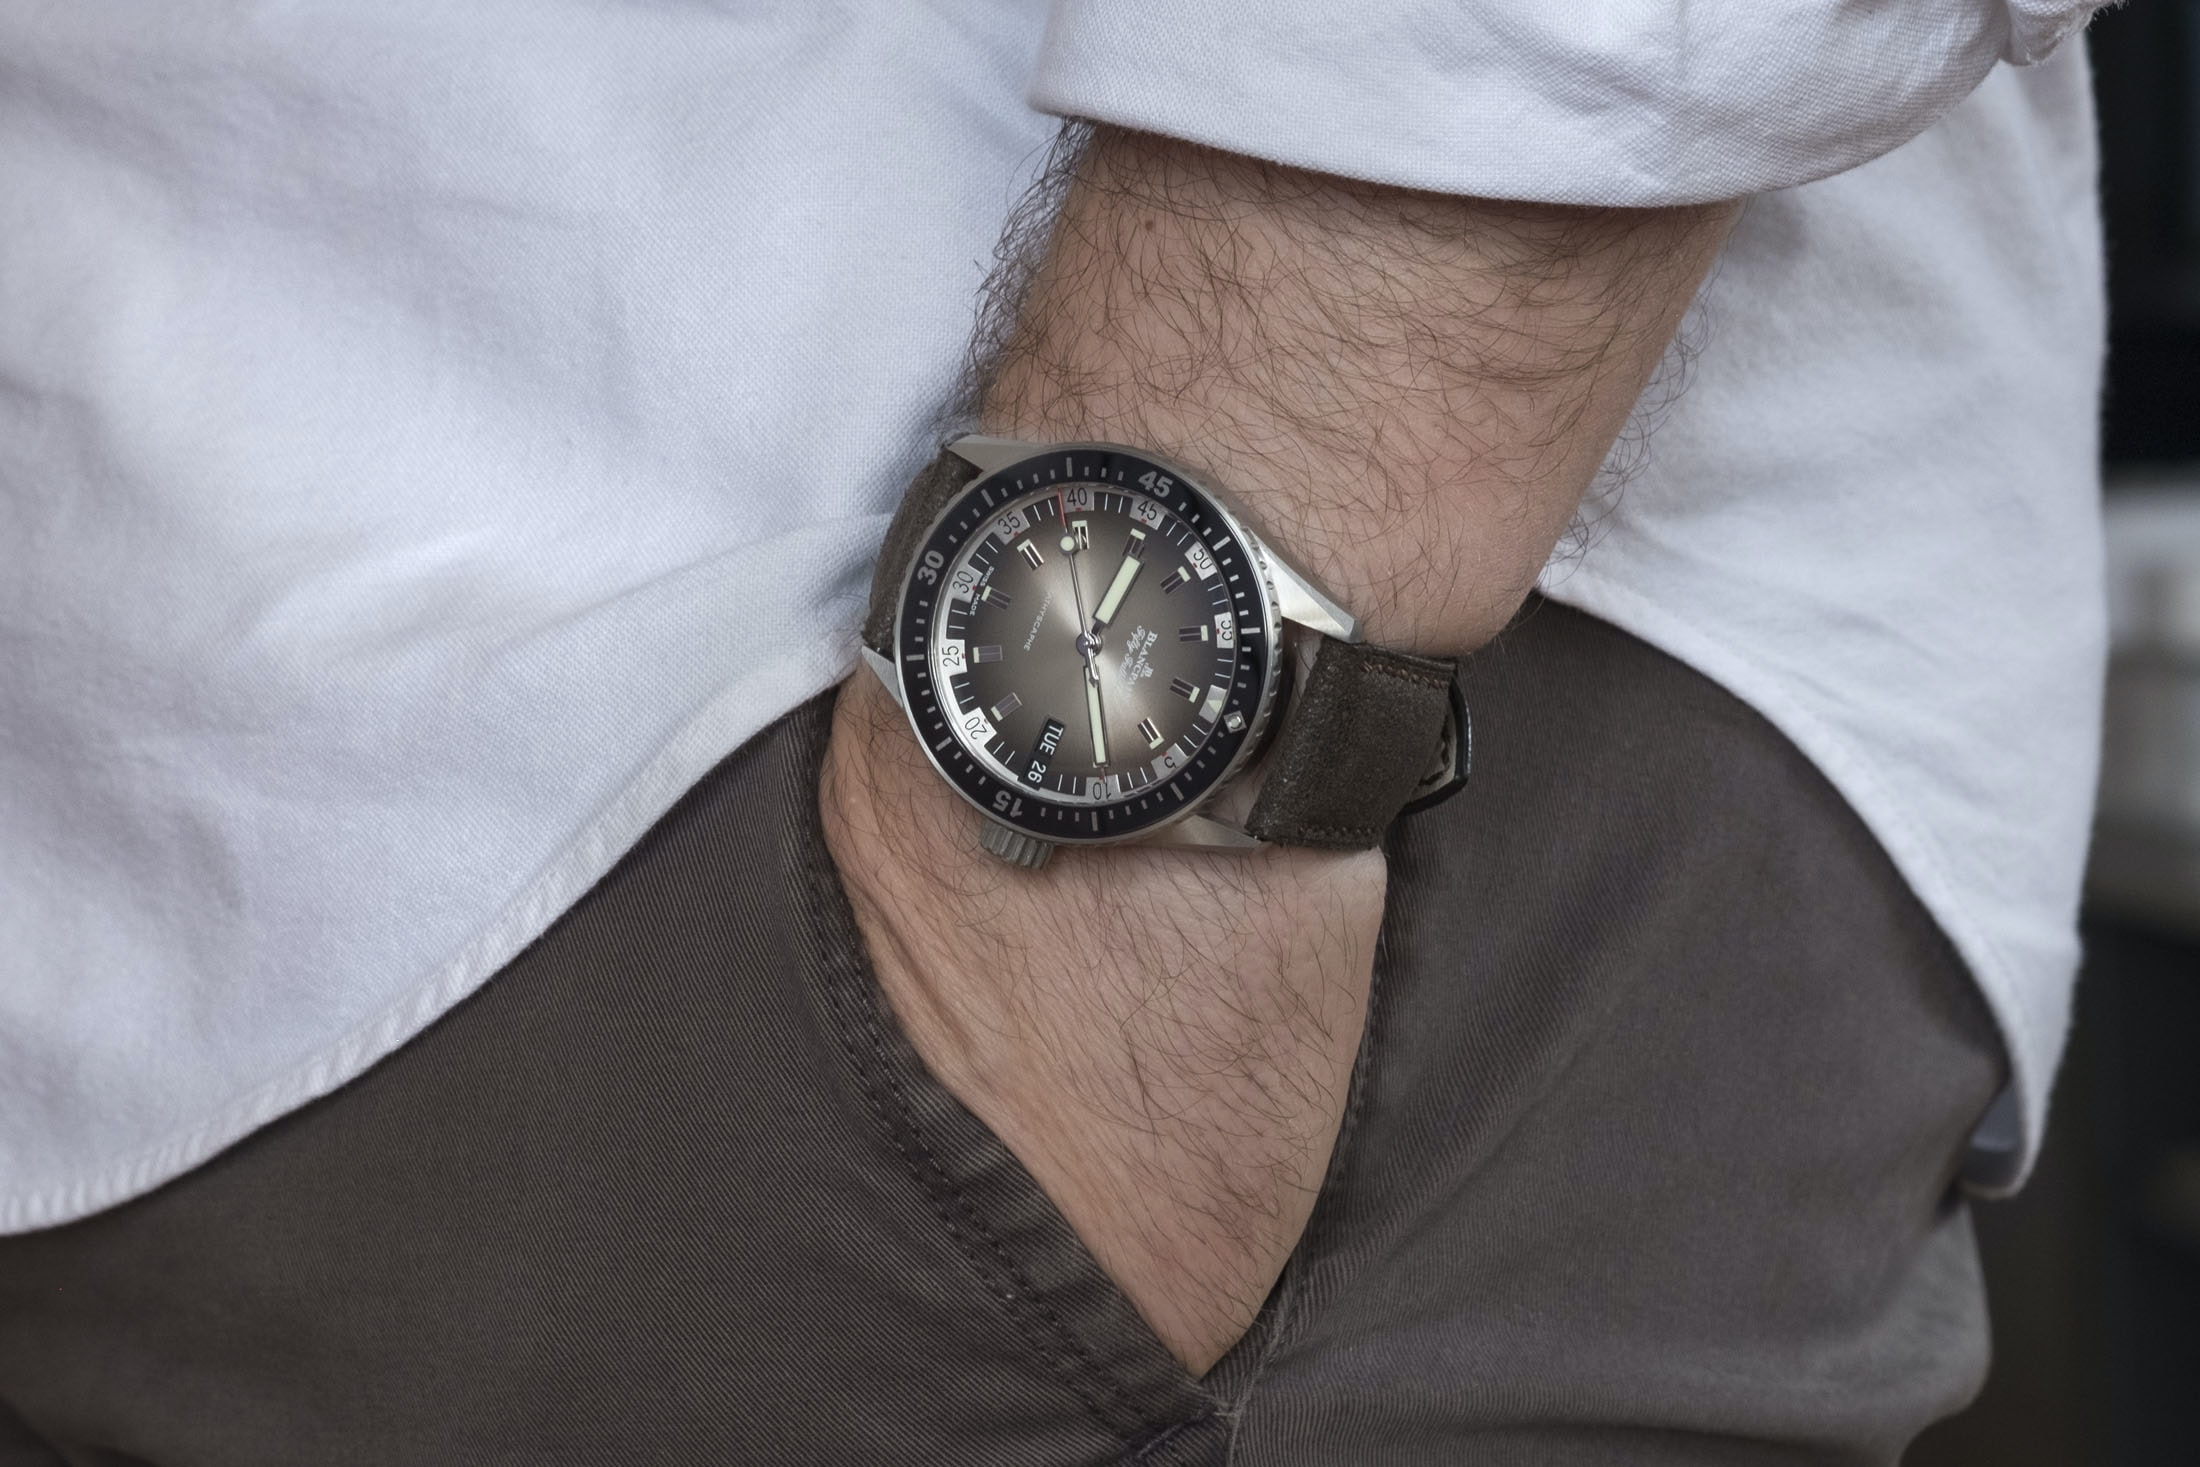 Review: The Blancpain Fifty Fathoms Bathyscaphe Day Date 70s DSCF8701